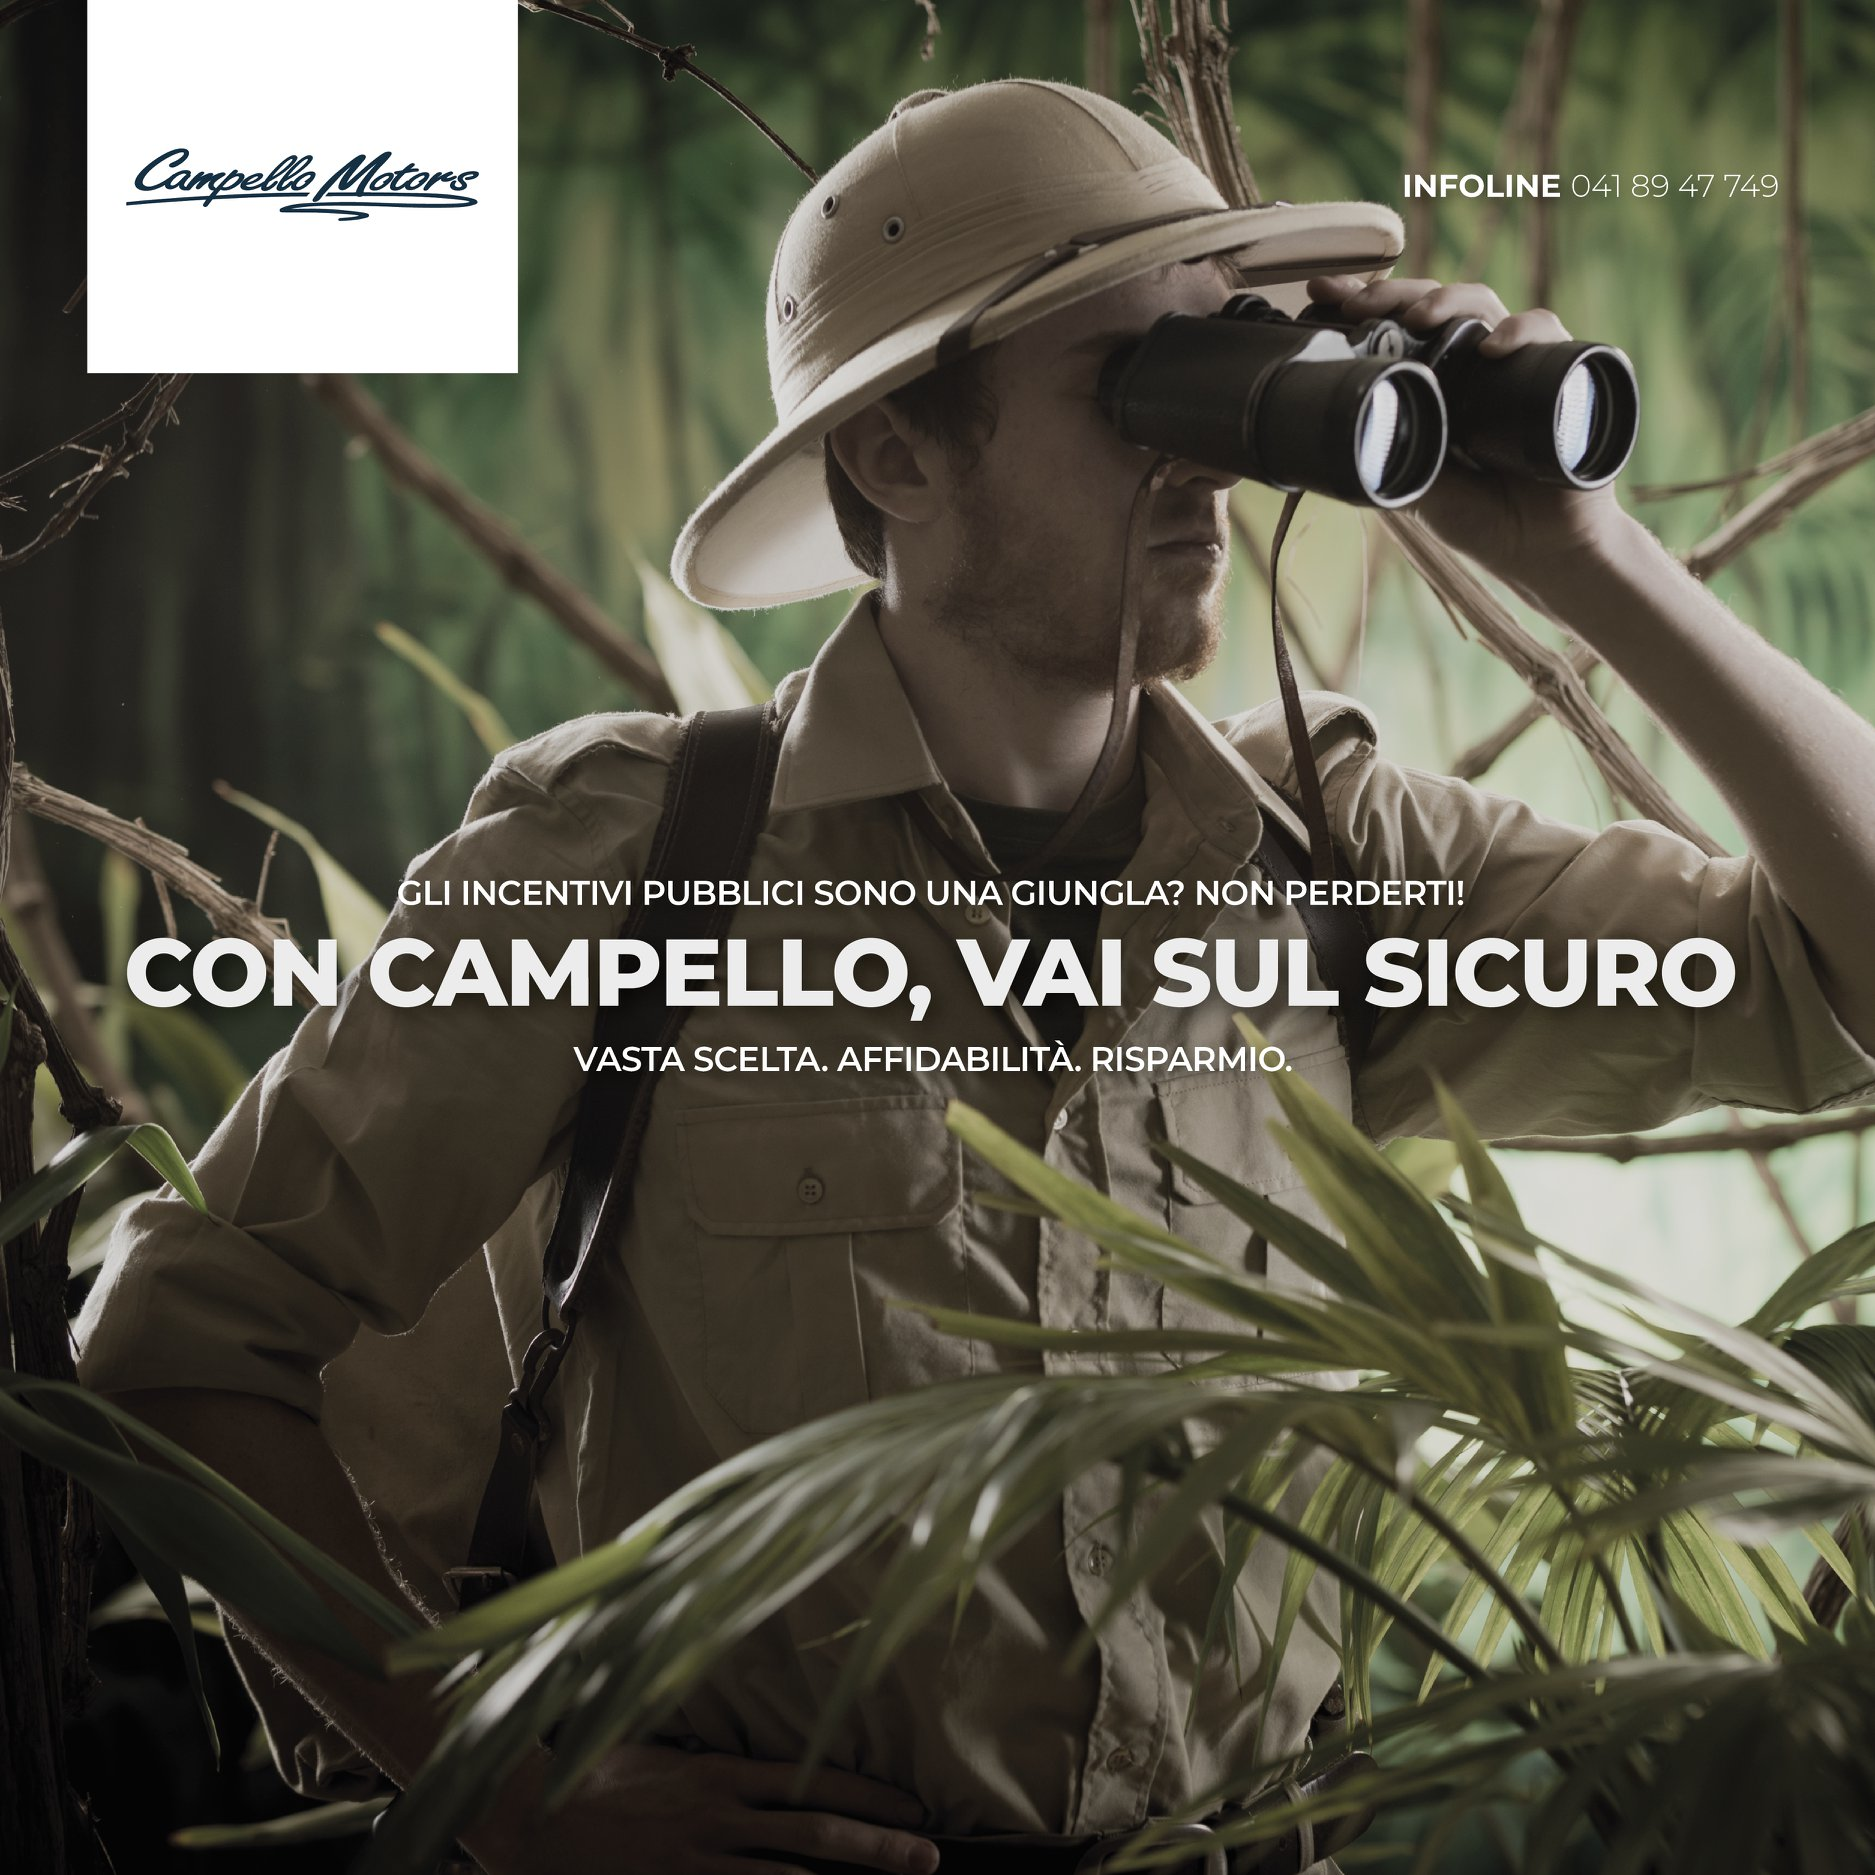 Campagna advertising Campello Motors